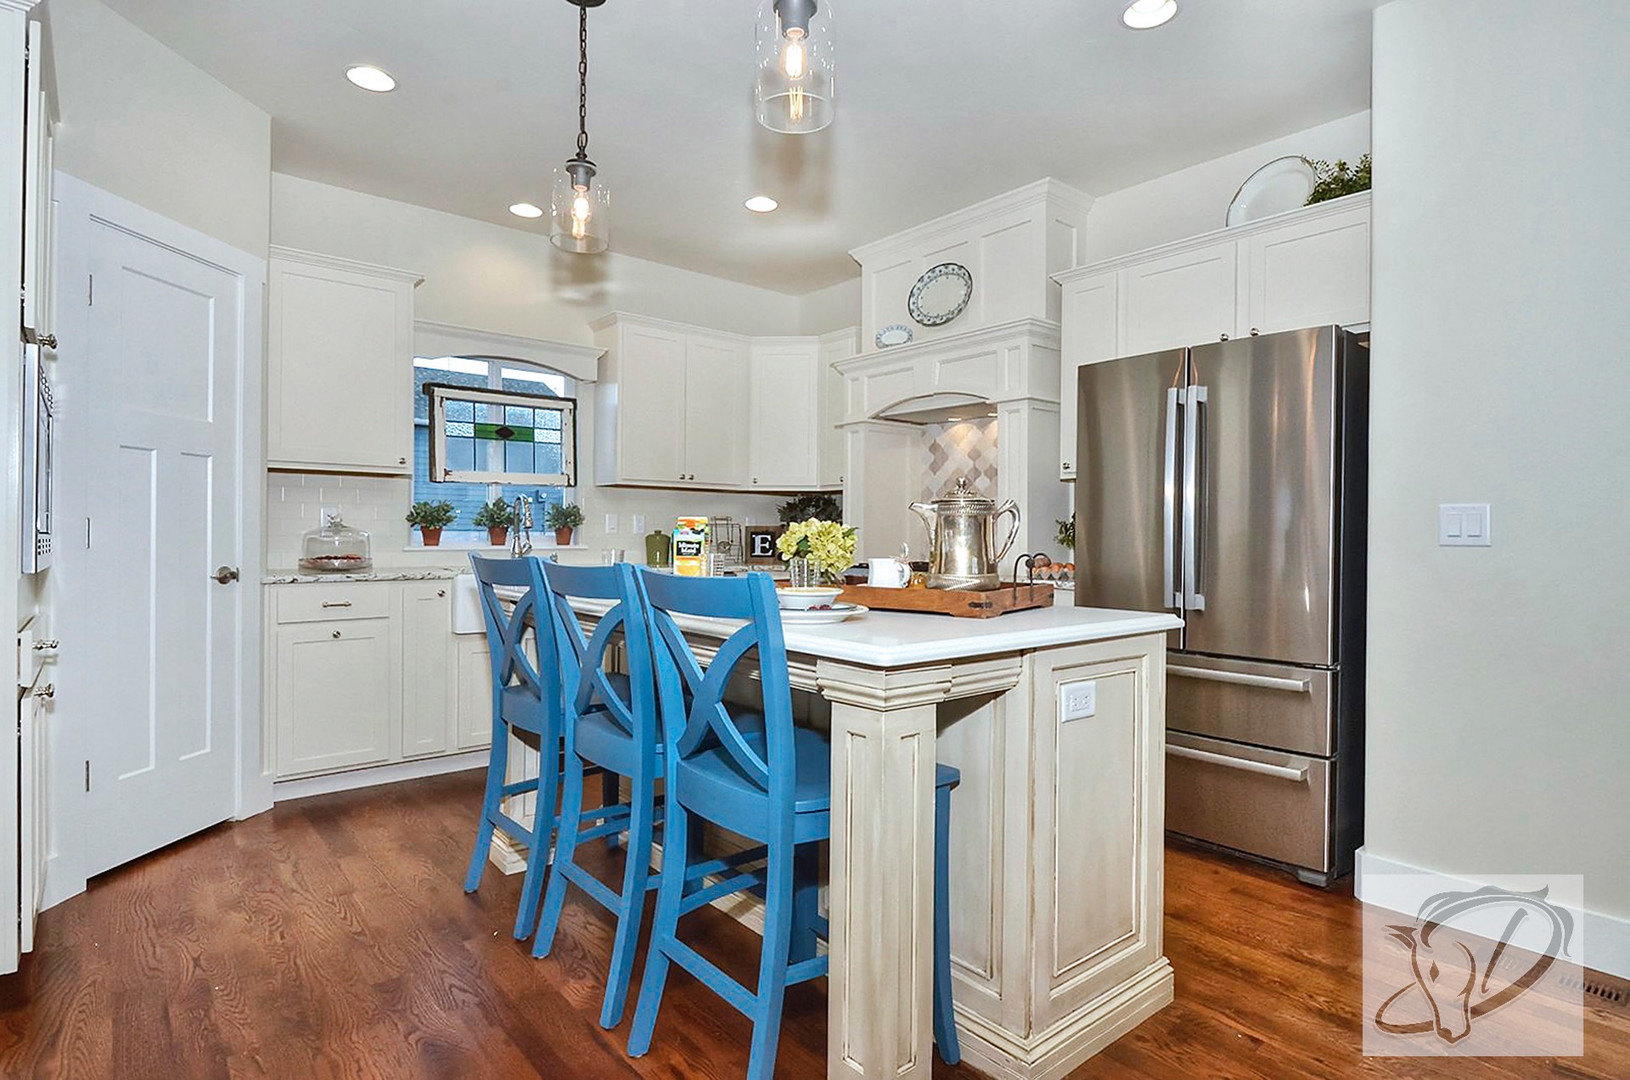 Charming craftsman kitchen with custom range hood, antique white cabinets, farmhouse sink, stained glass and buffet (purchase out of a storage unit) re-purposed into a custom island